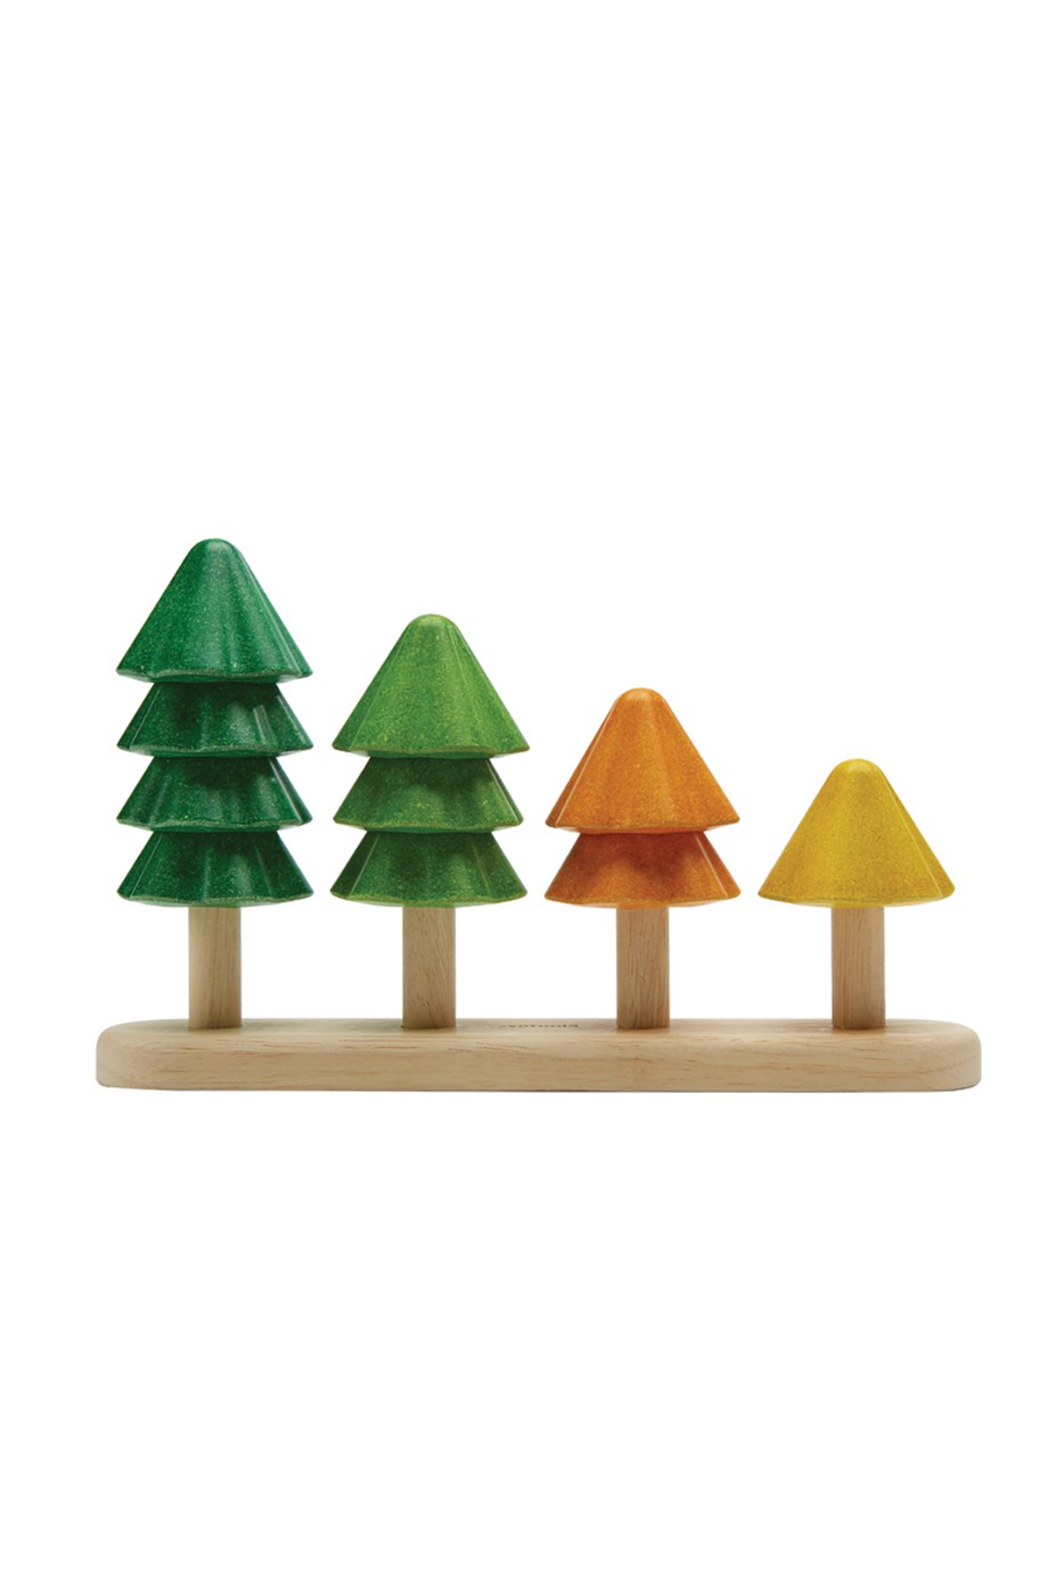 Plan Toys Sort & Count Tree - Main Image